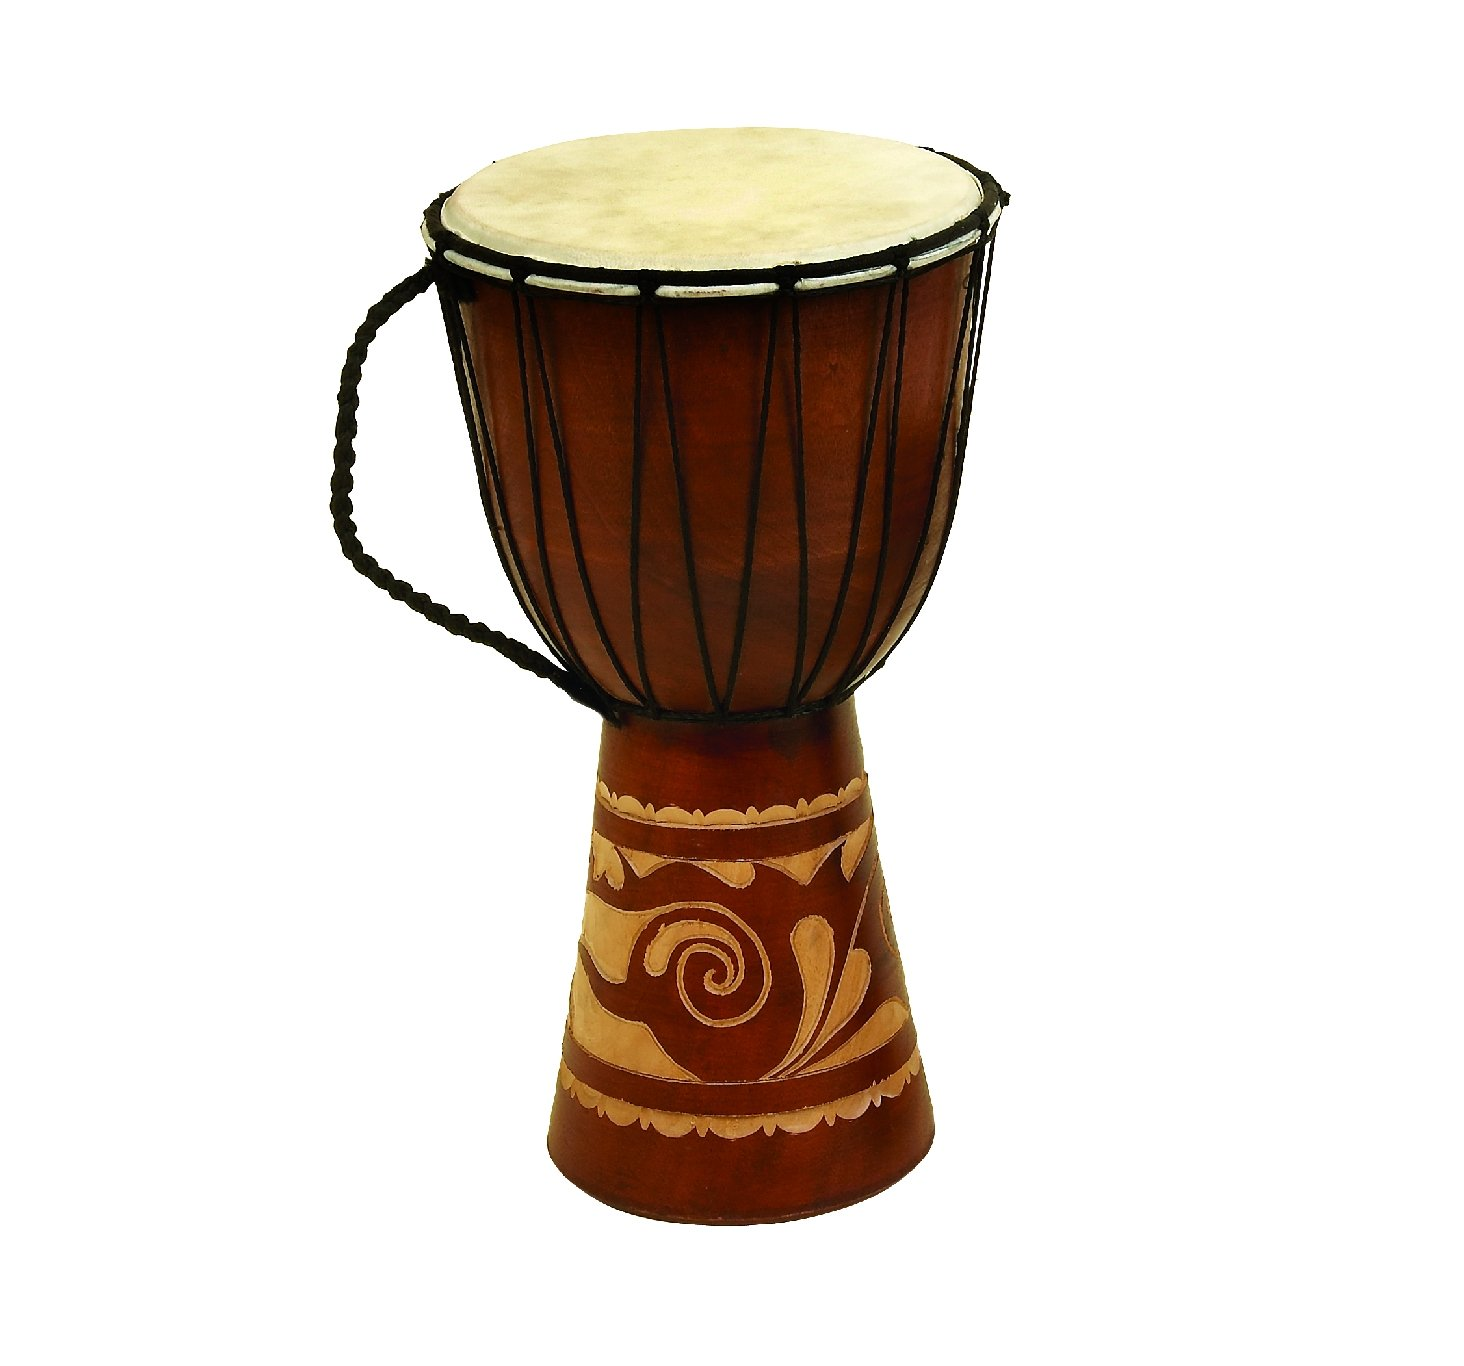 Deco 79 89847 Wood Leather Djembe Drum Home Décor Product, 16'' H/9'' W